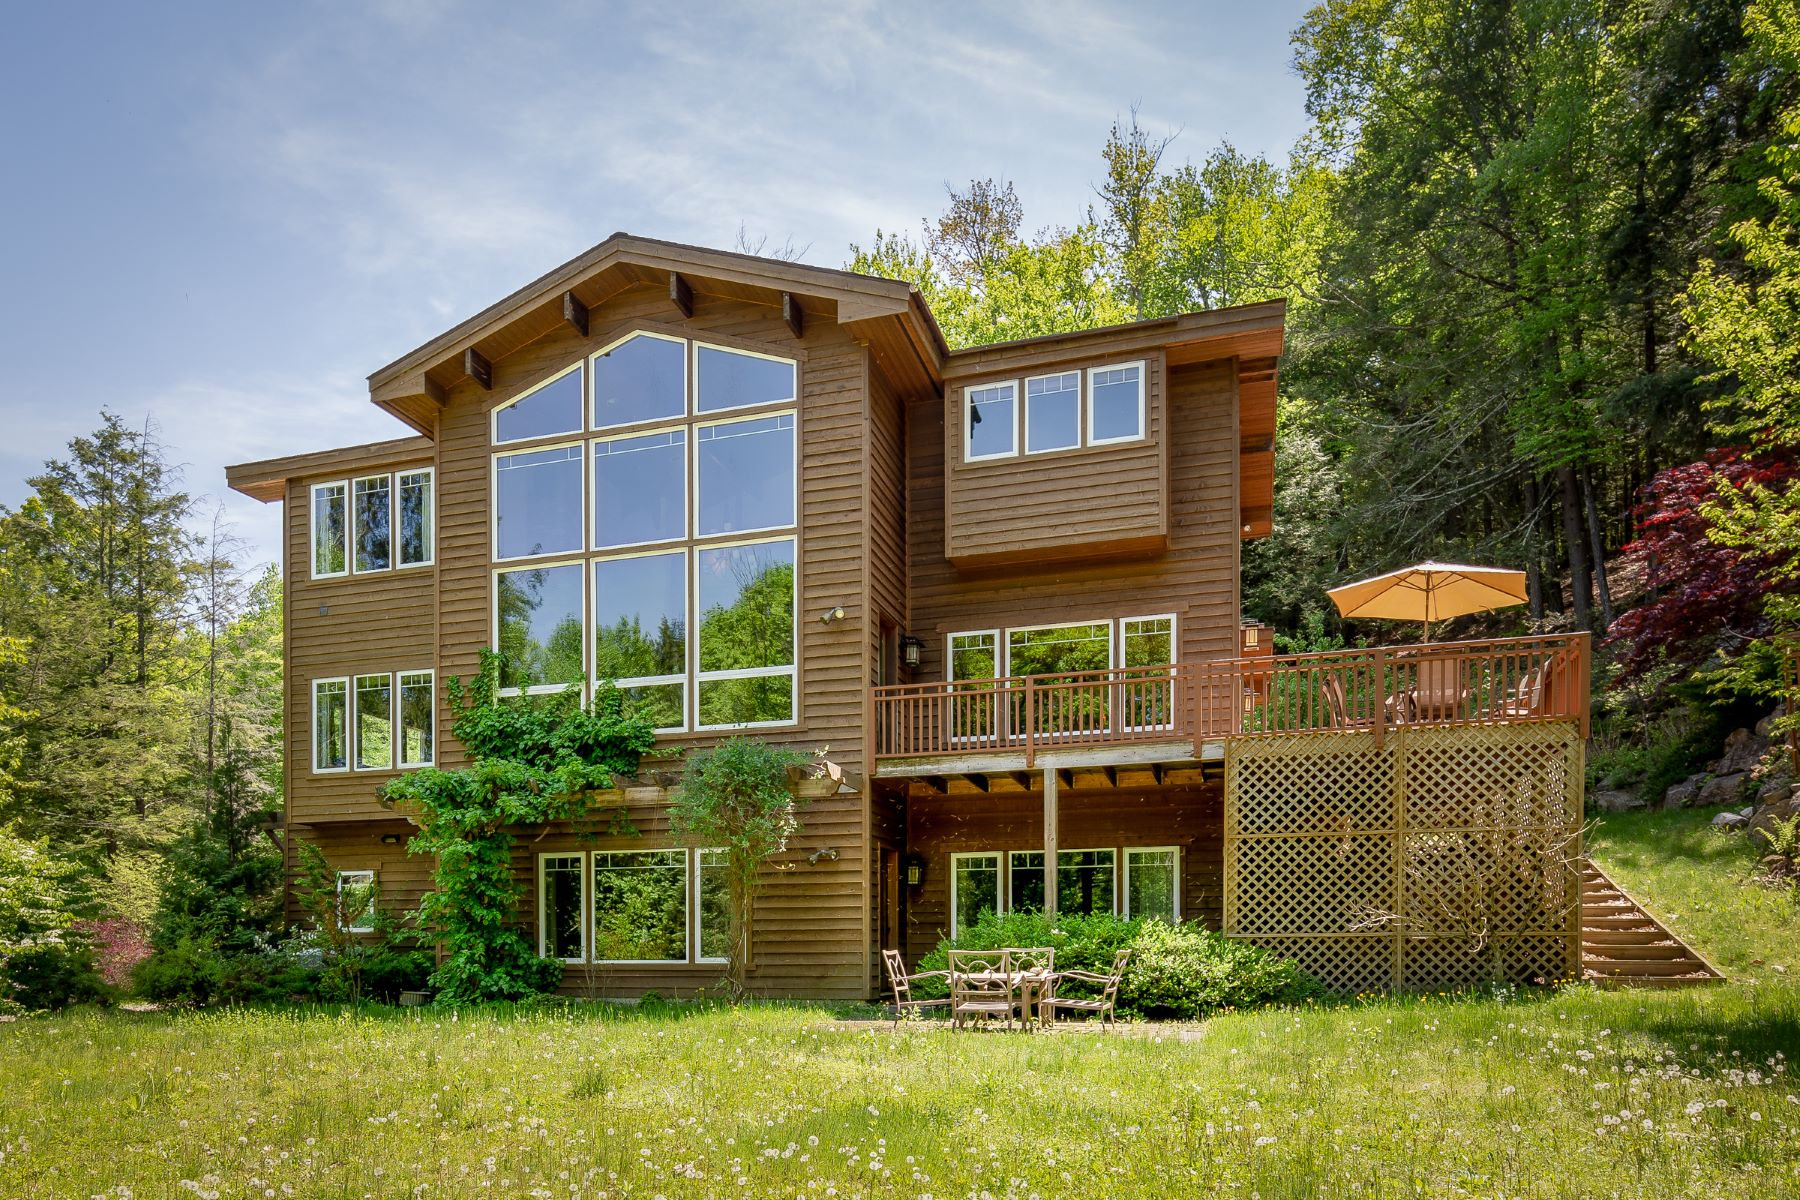 Single Family Homes for Active at Spacious, Light-Filled Contemporary with Custom Arts and Crafts Details 4 East Mountain Rd Great Barrington, Massachusetts 01230 United States